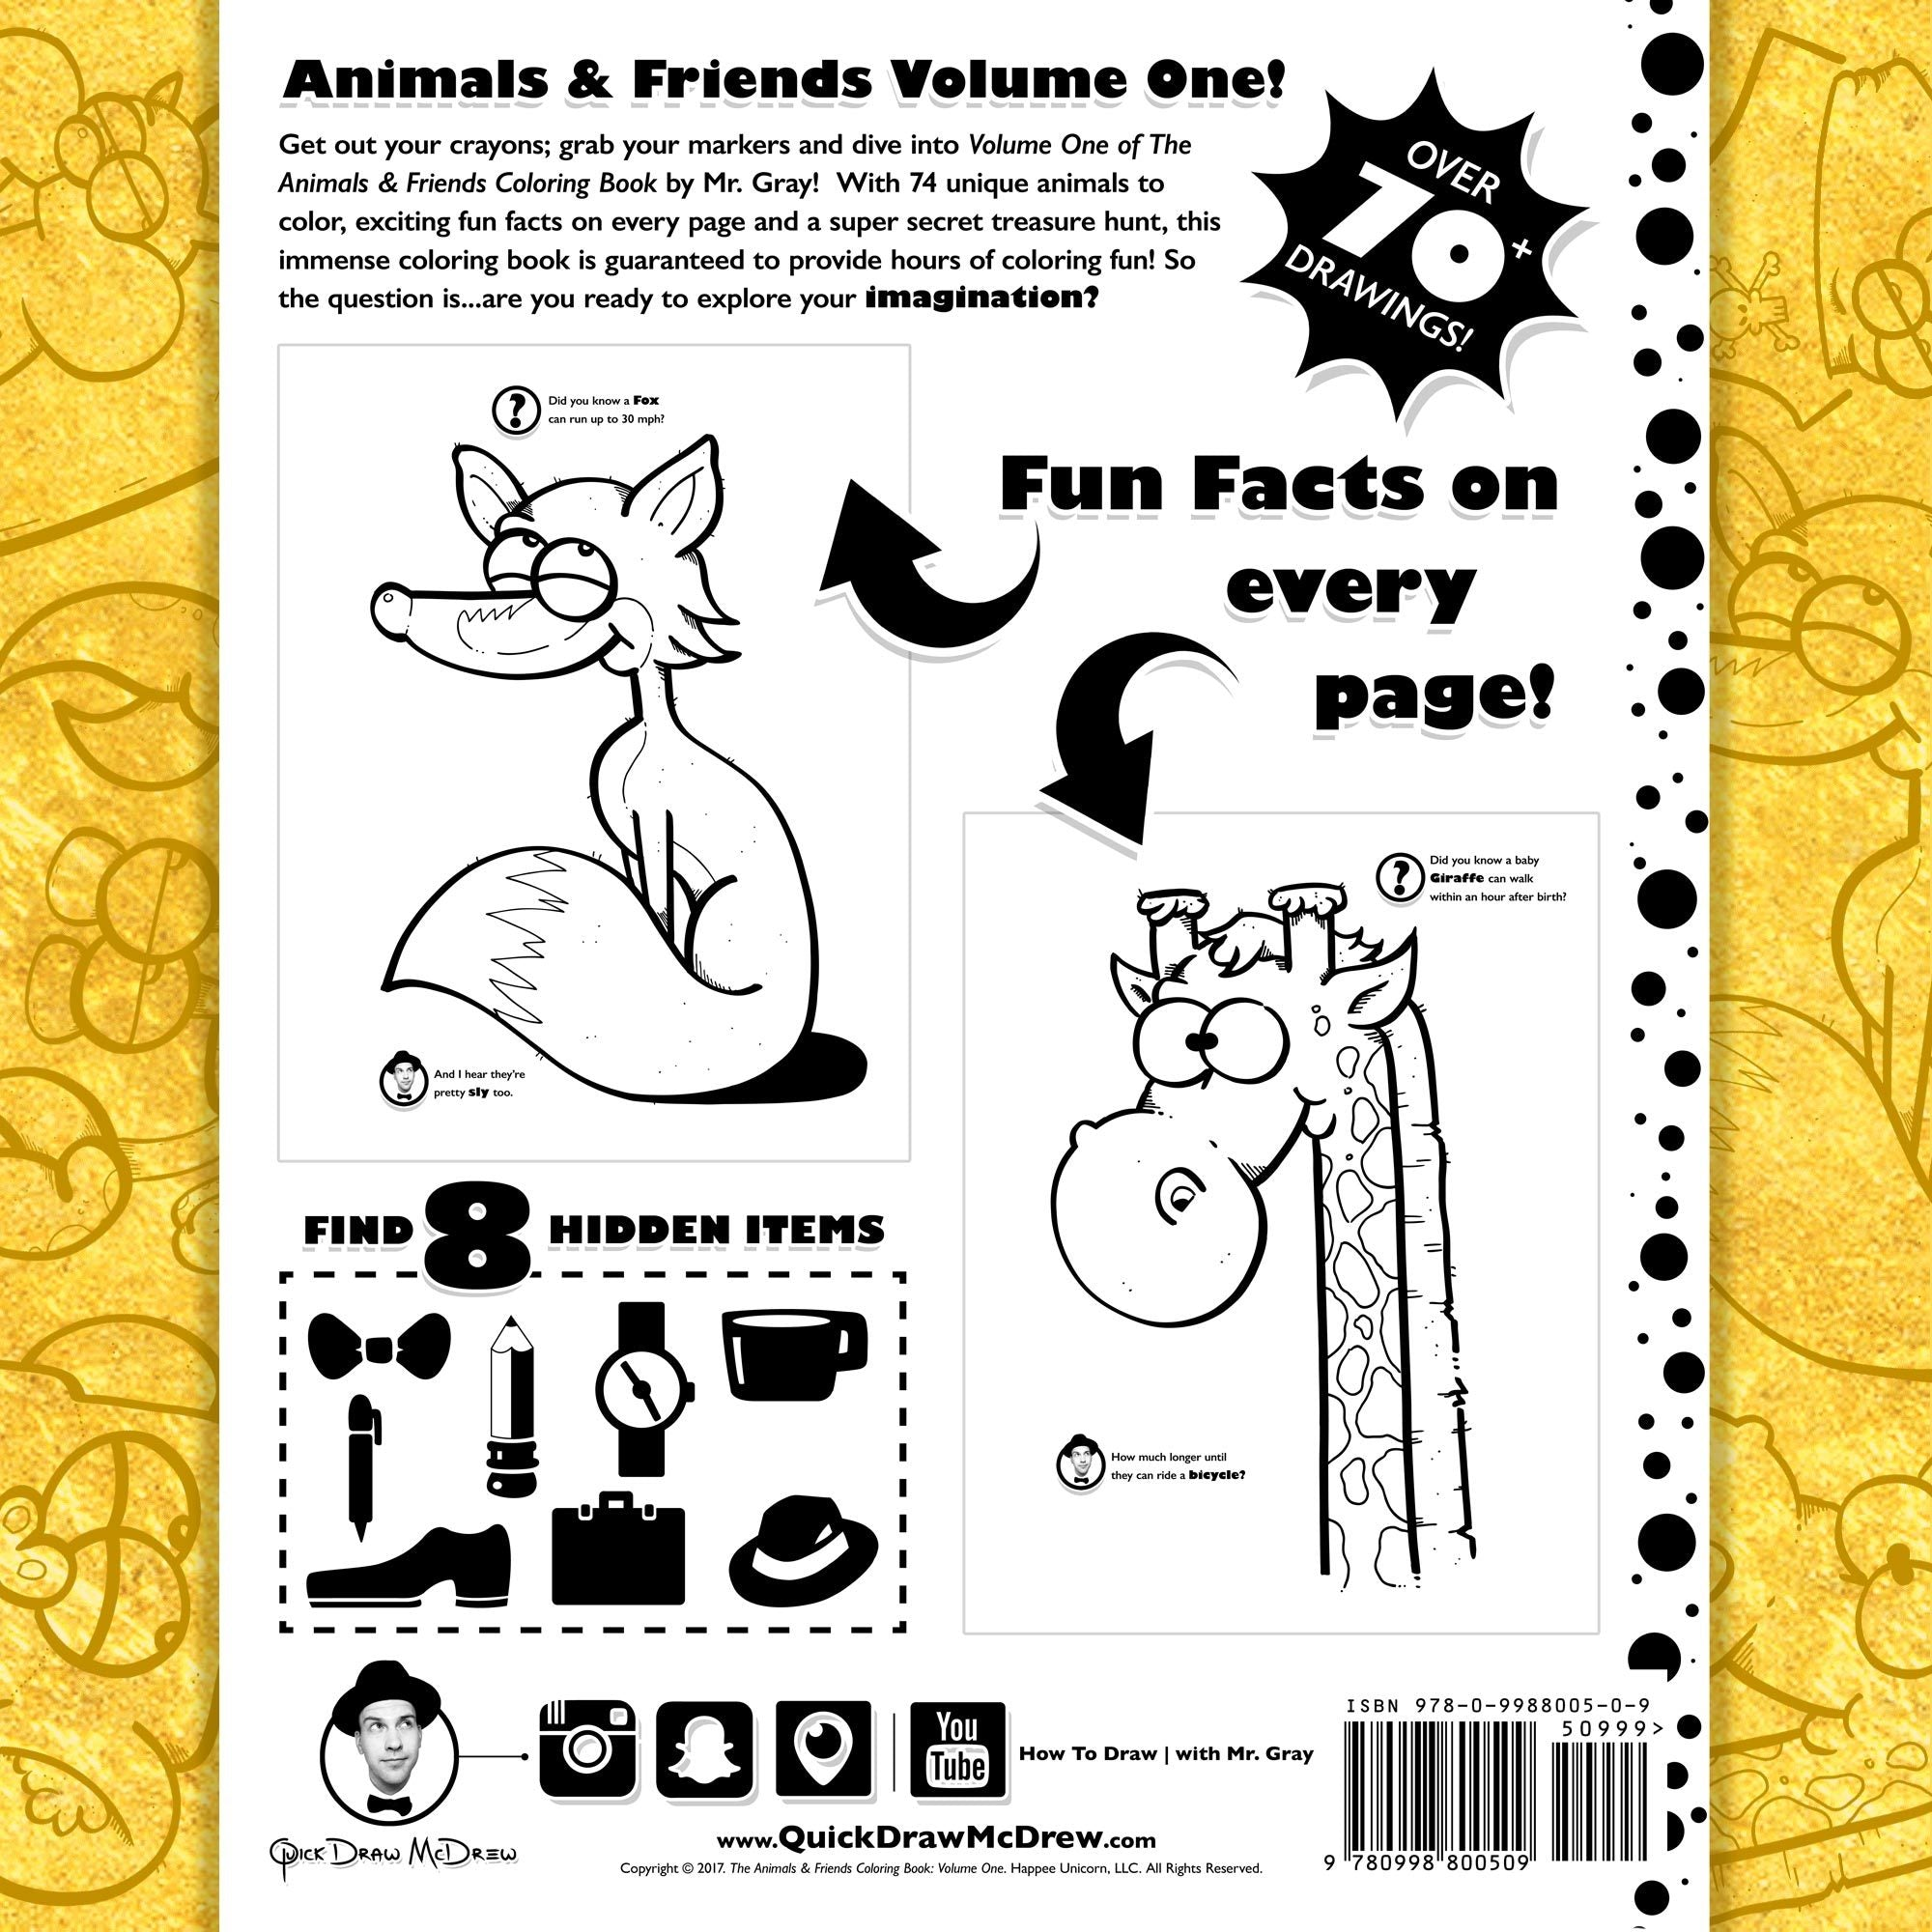 copyright-©-2017-the-animals-and-friends-coloring-book-volume-one-by-mr-gray-look-inside-14